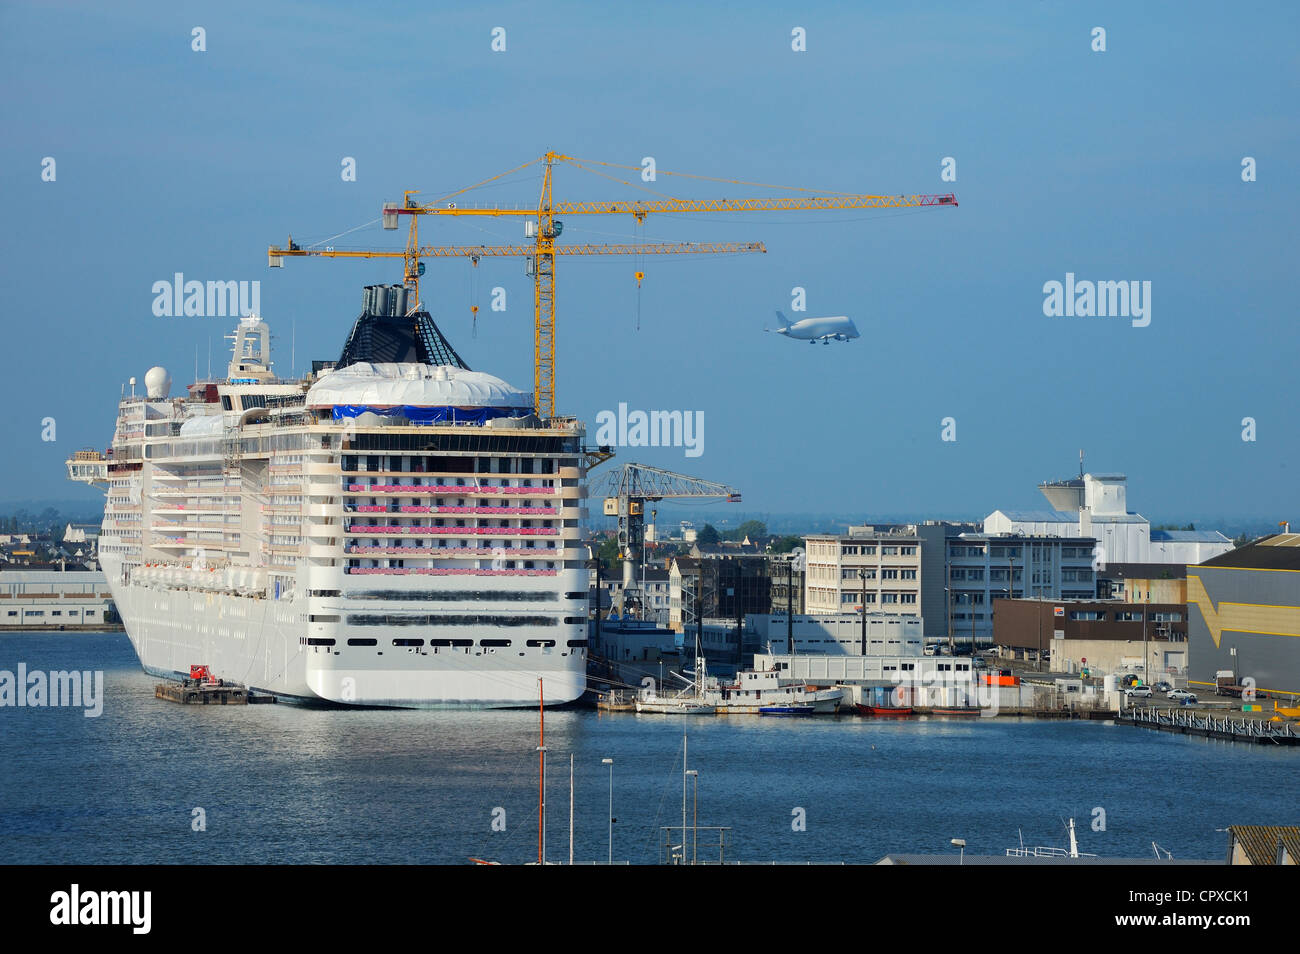 France Loire Atlantique Saint Nazaire Port Saint Nazaire Pool And